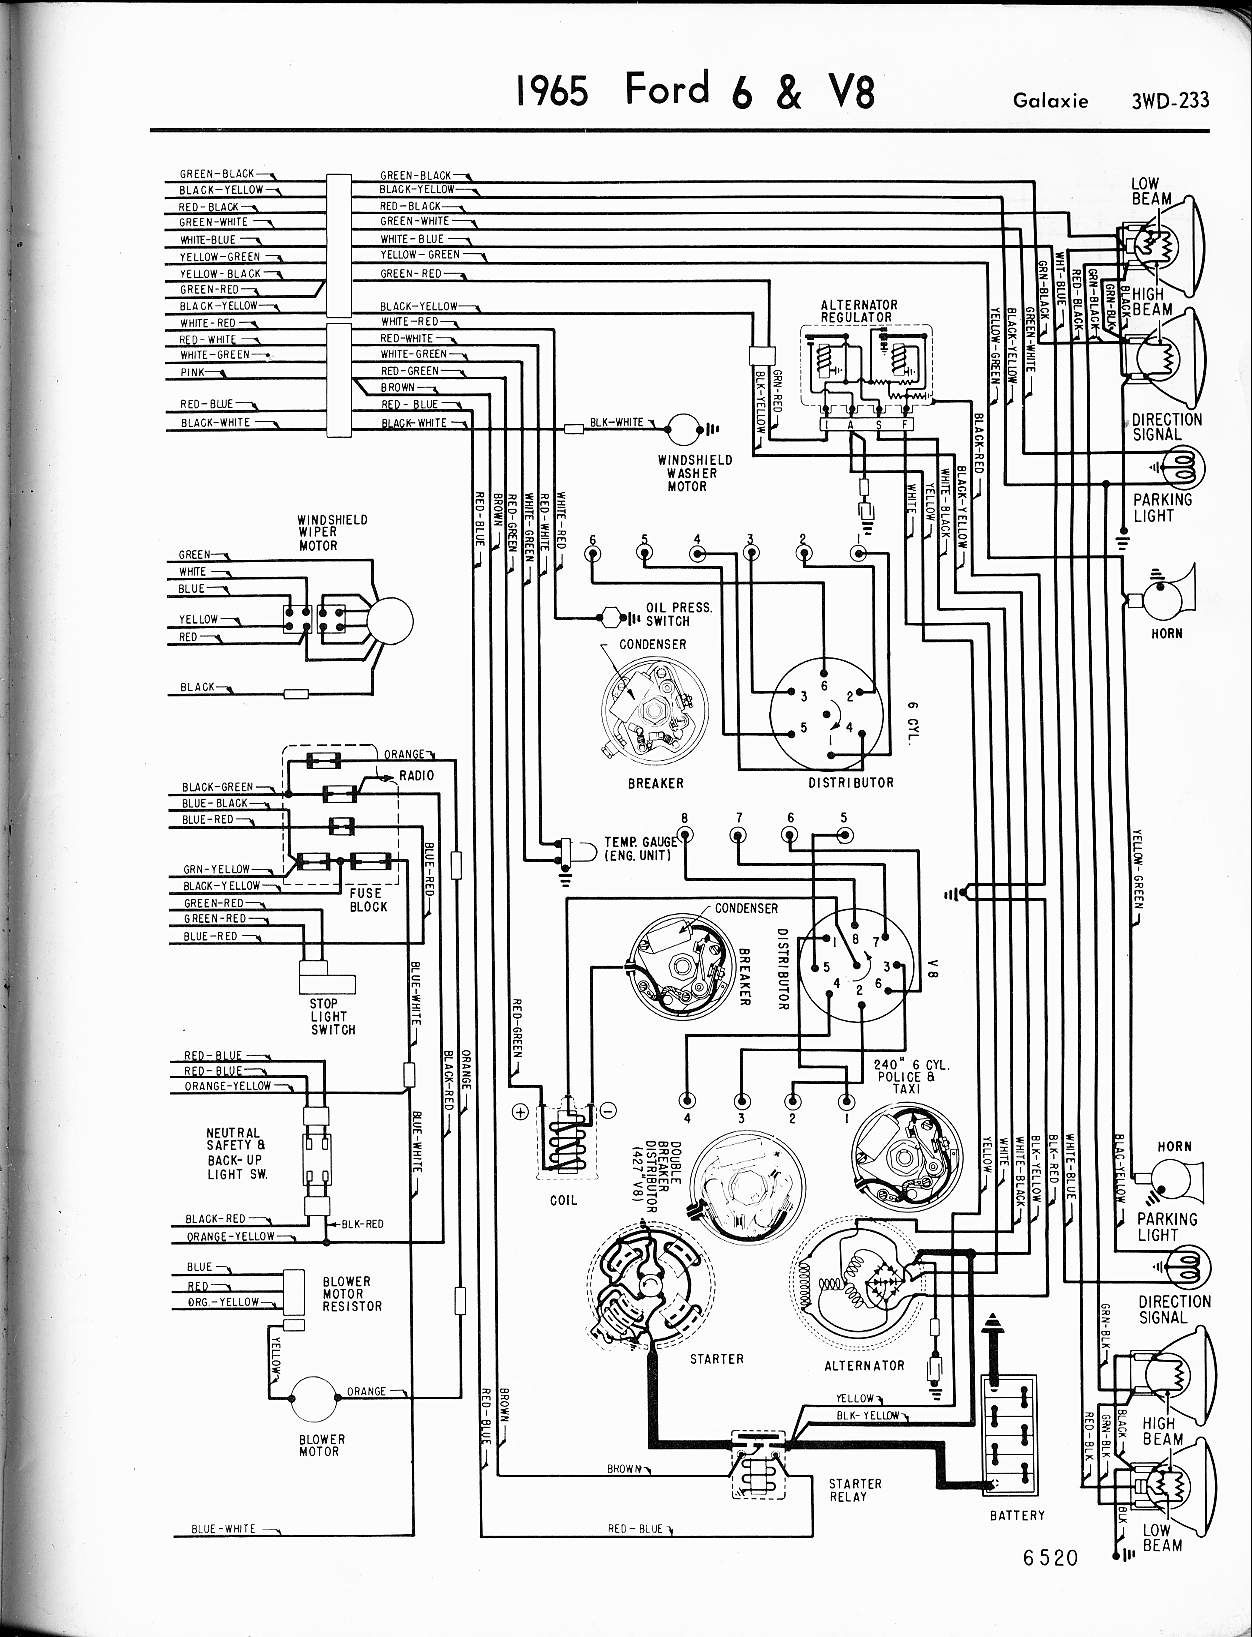 Tremendous Ford Wire Diagram Basic Electronics Wiring Diagram Wiring Cloud Mousmenurrecoveryedborg